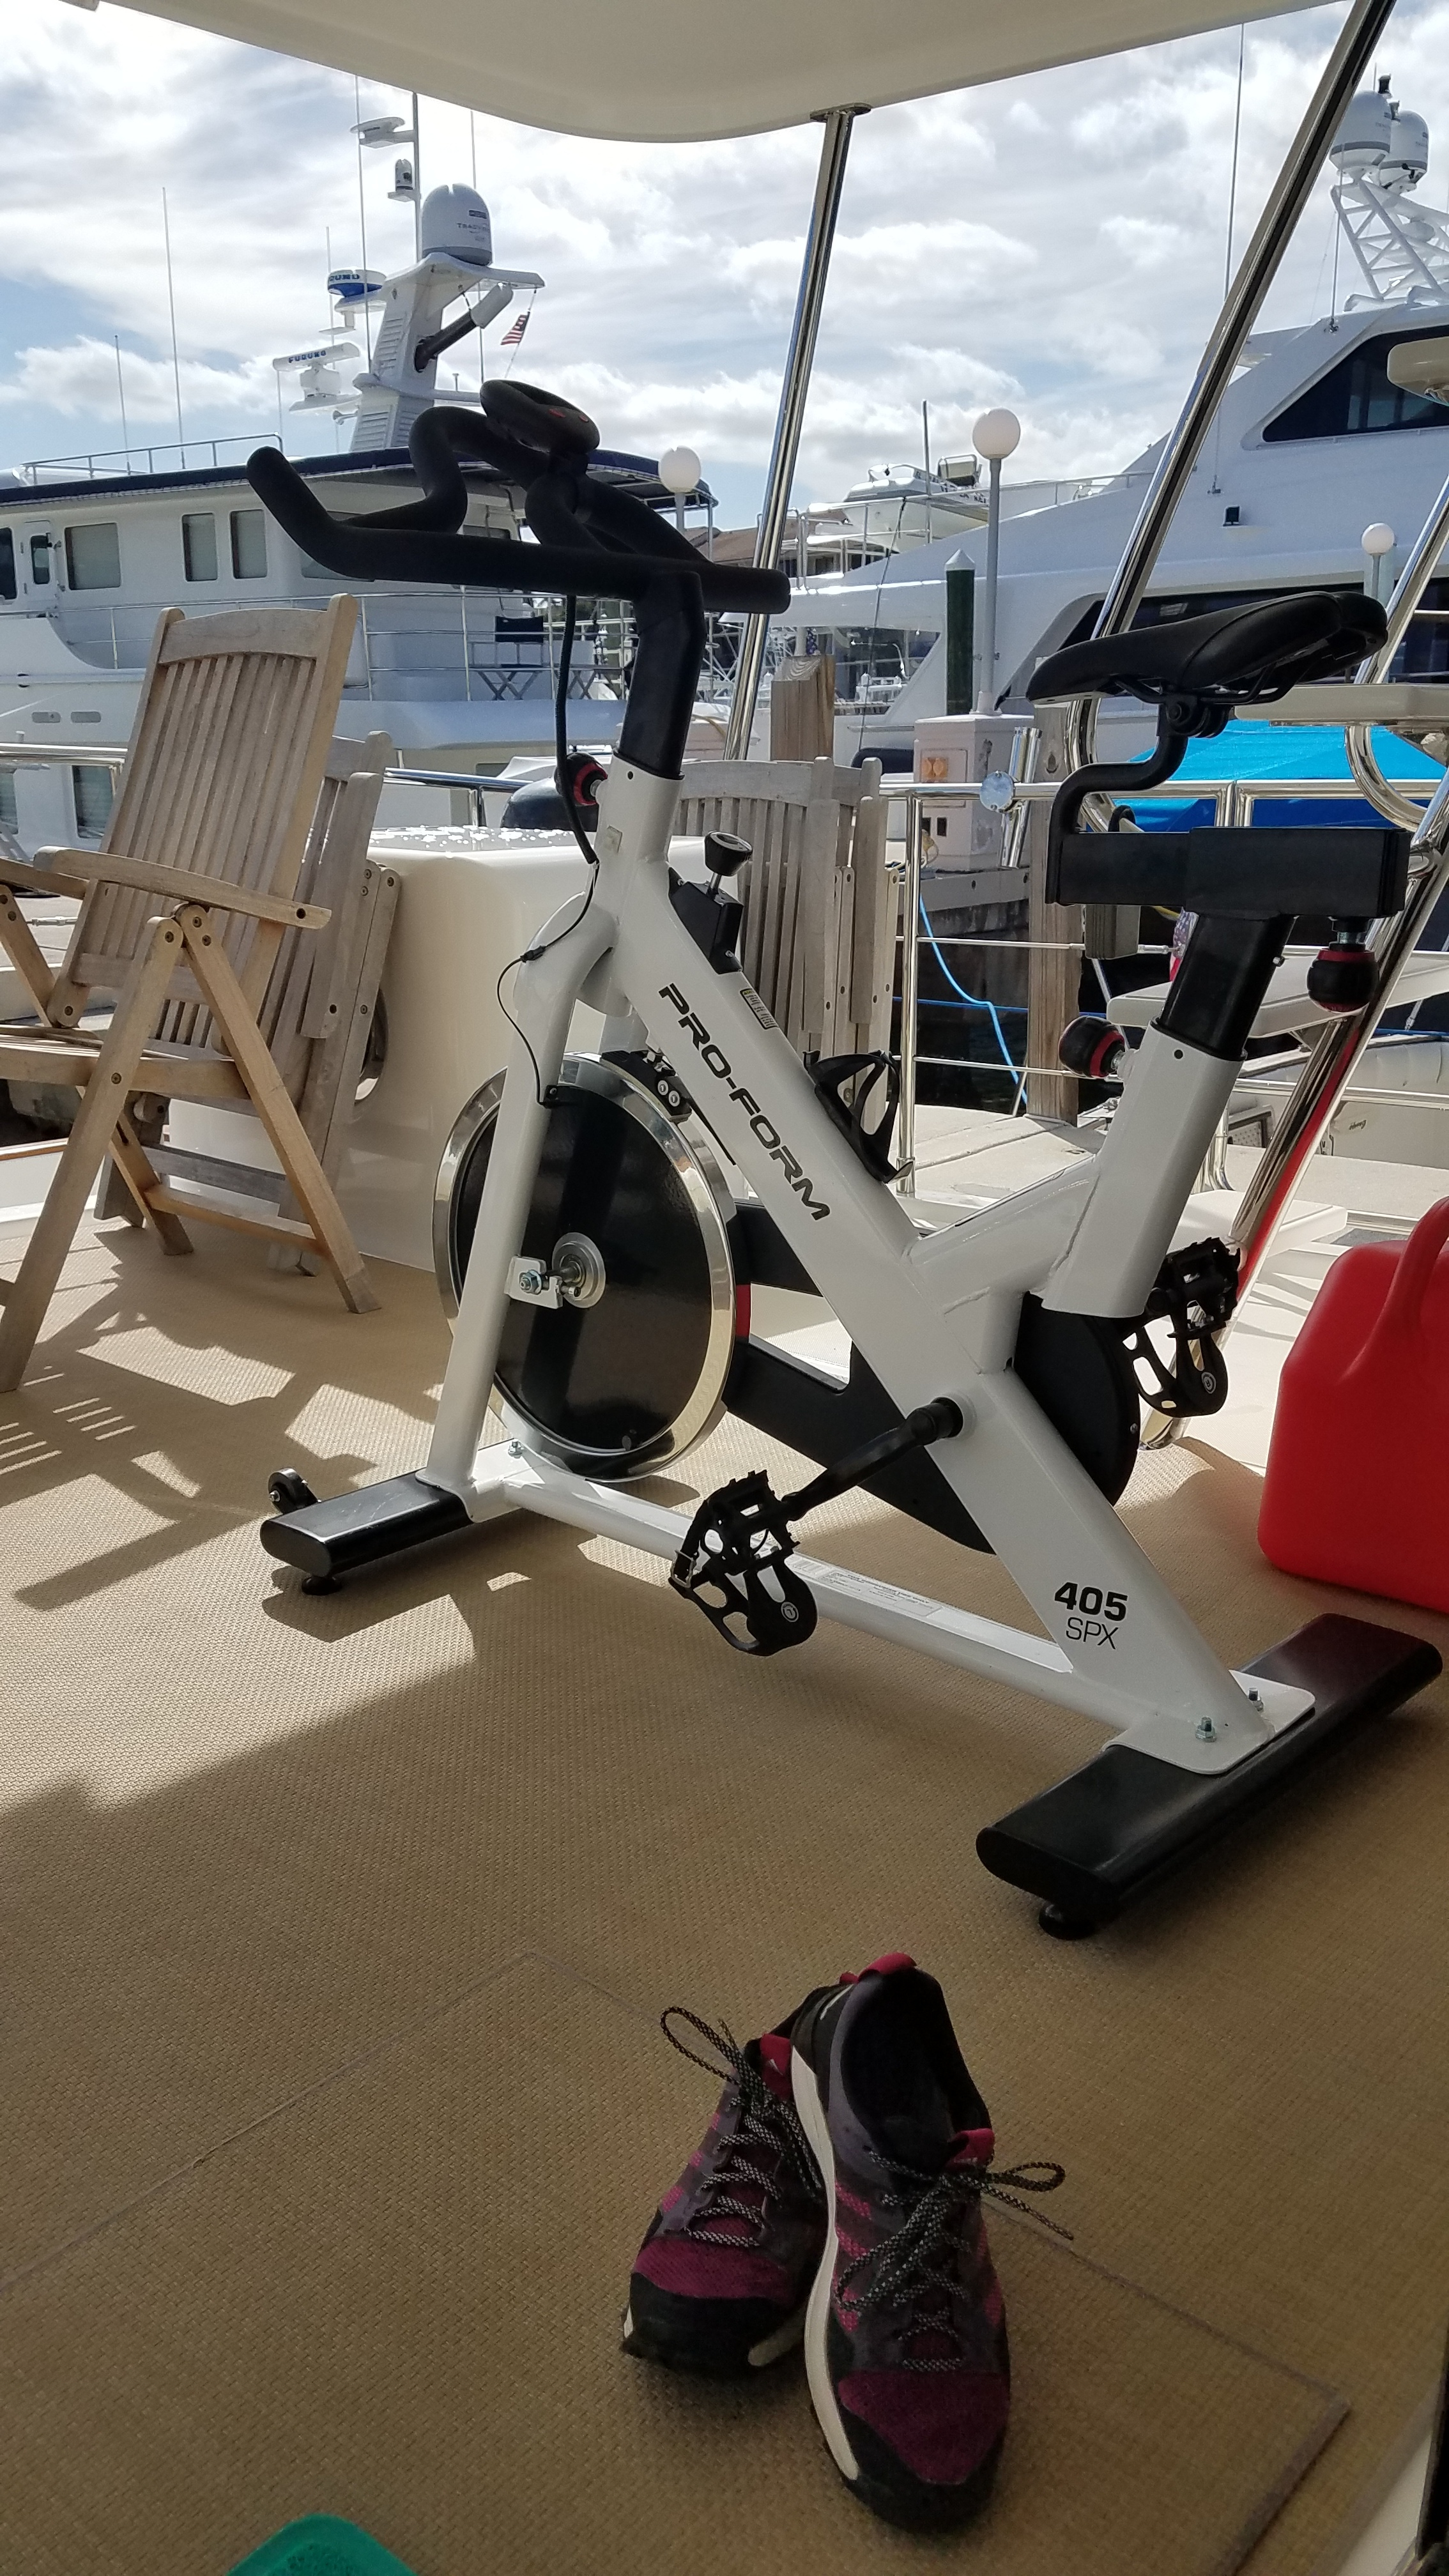 No trails, no gym - no excuses now that we have 'Pro-Form 405 SPX' from Costco